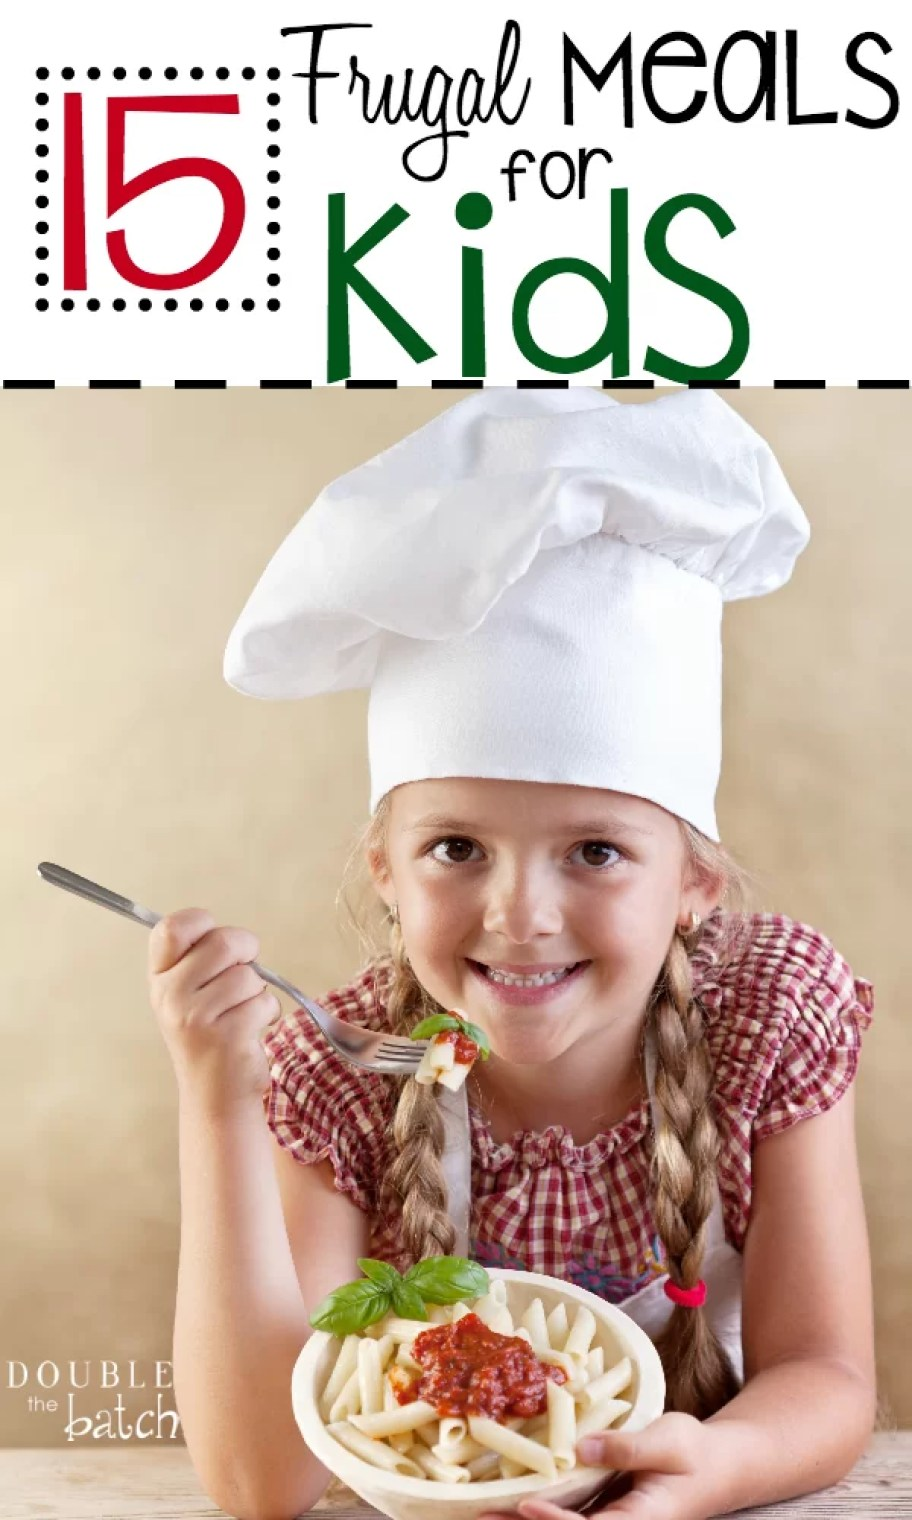 15 Frugal meals for kids